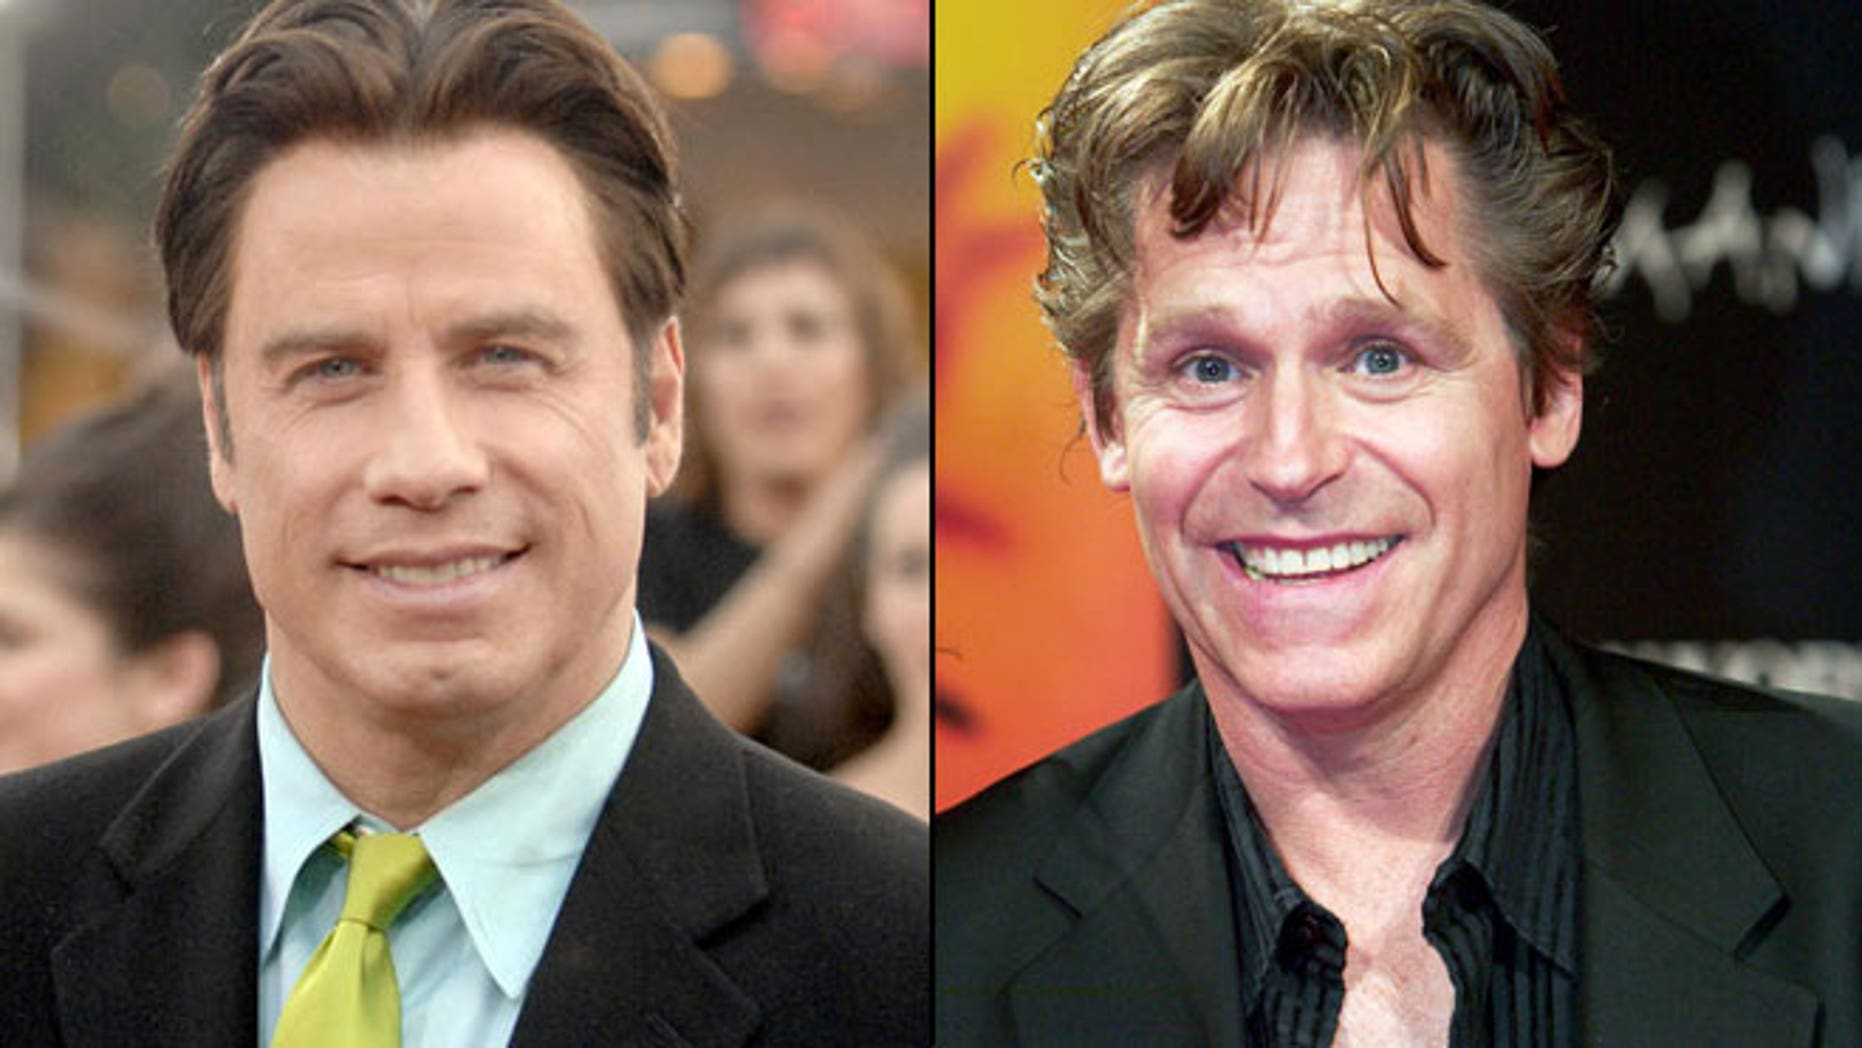 John Travolta (left) is accused of trying to engage in a sex act with his late friend and co-star Jeff Conaway (right)